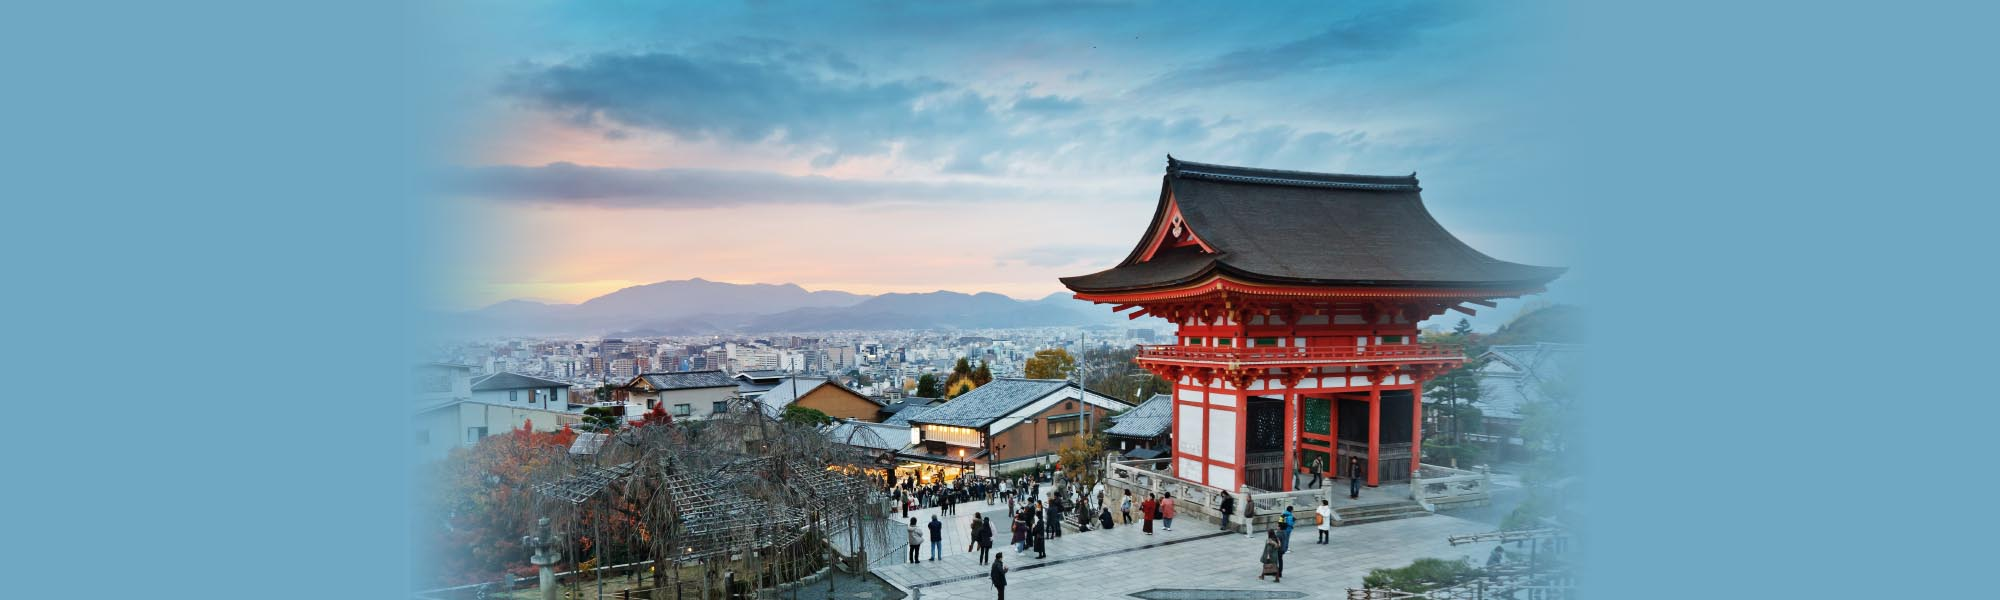 Teach English in Japan with i-to-i TEFL